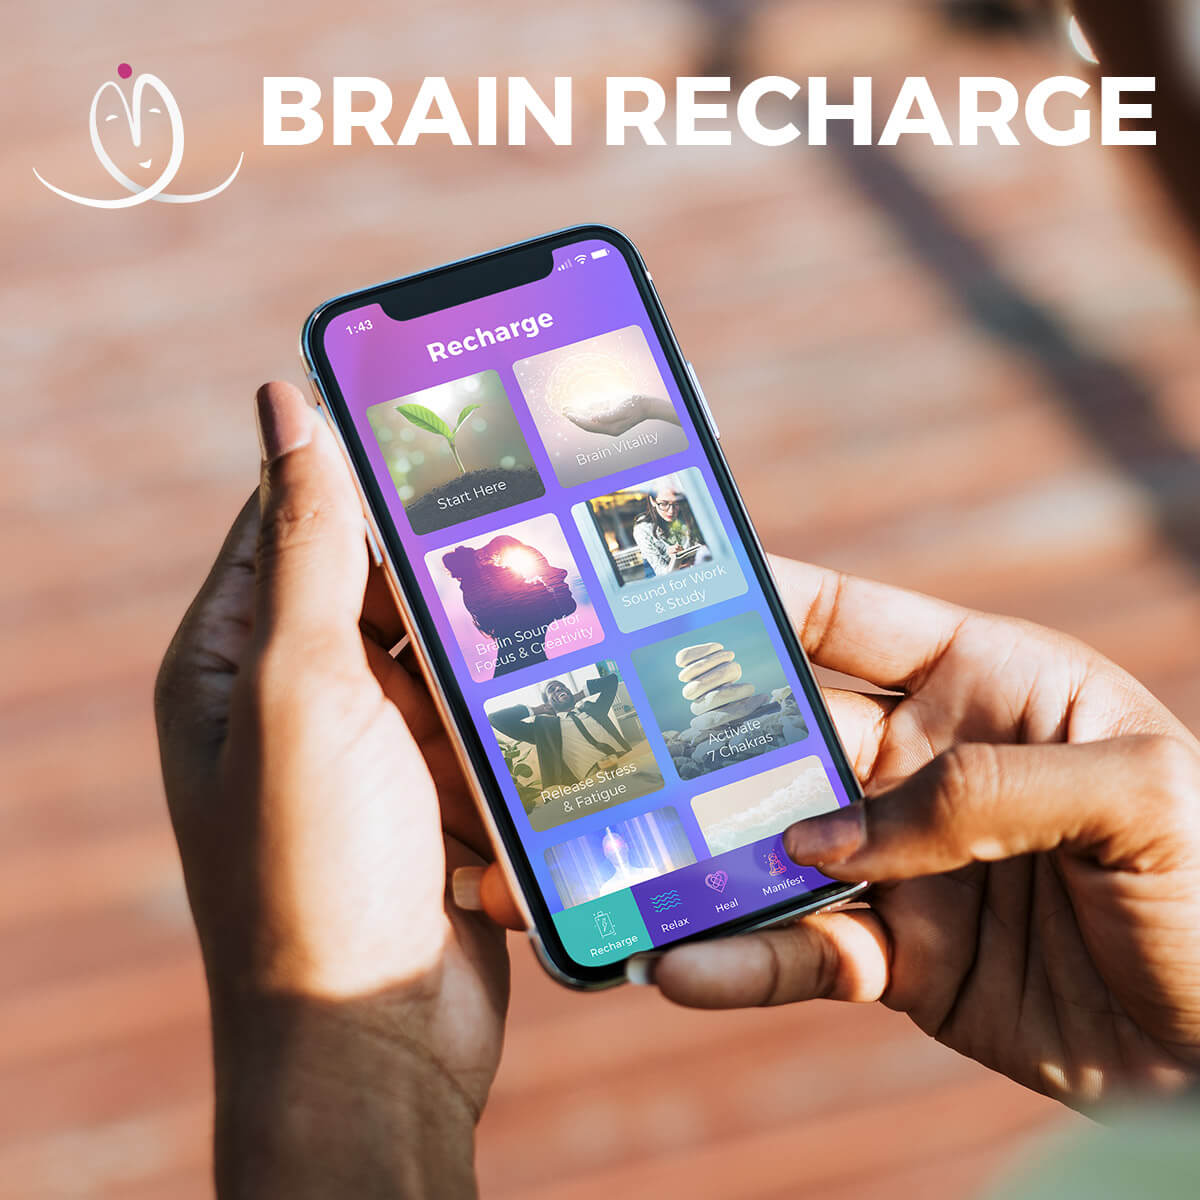 brain-recharge-connect-3a.jpg